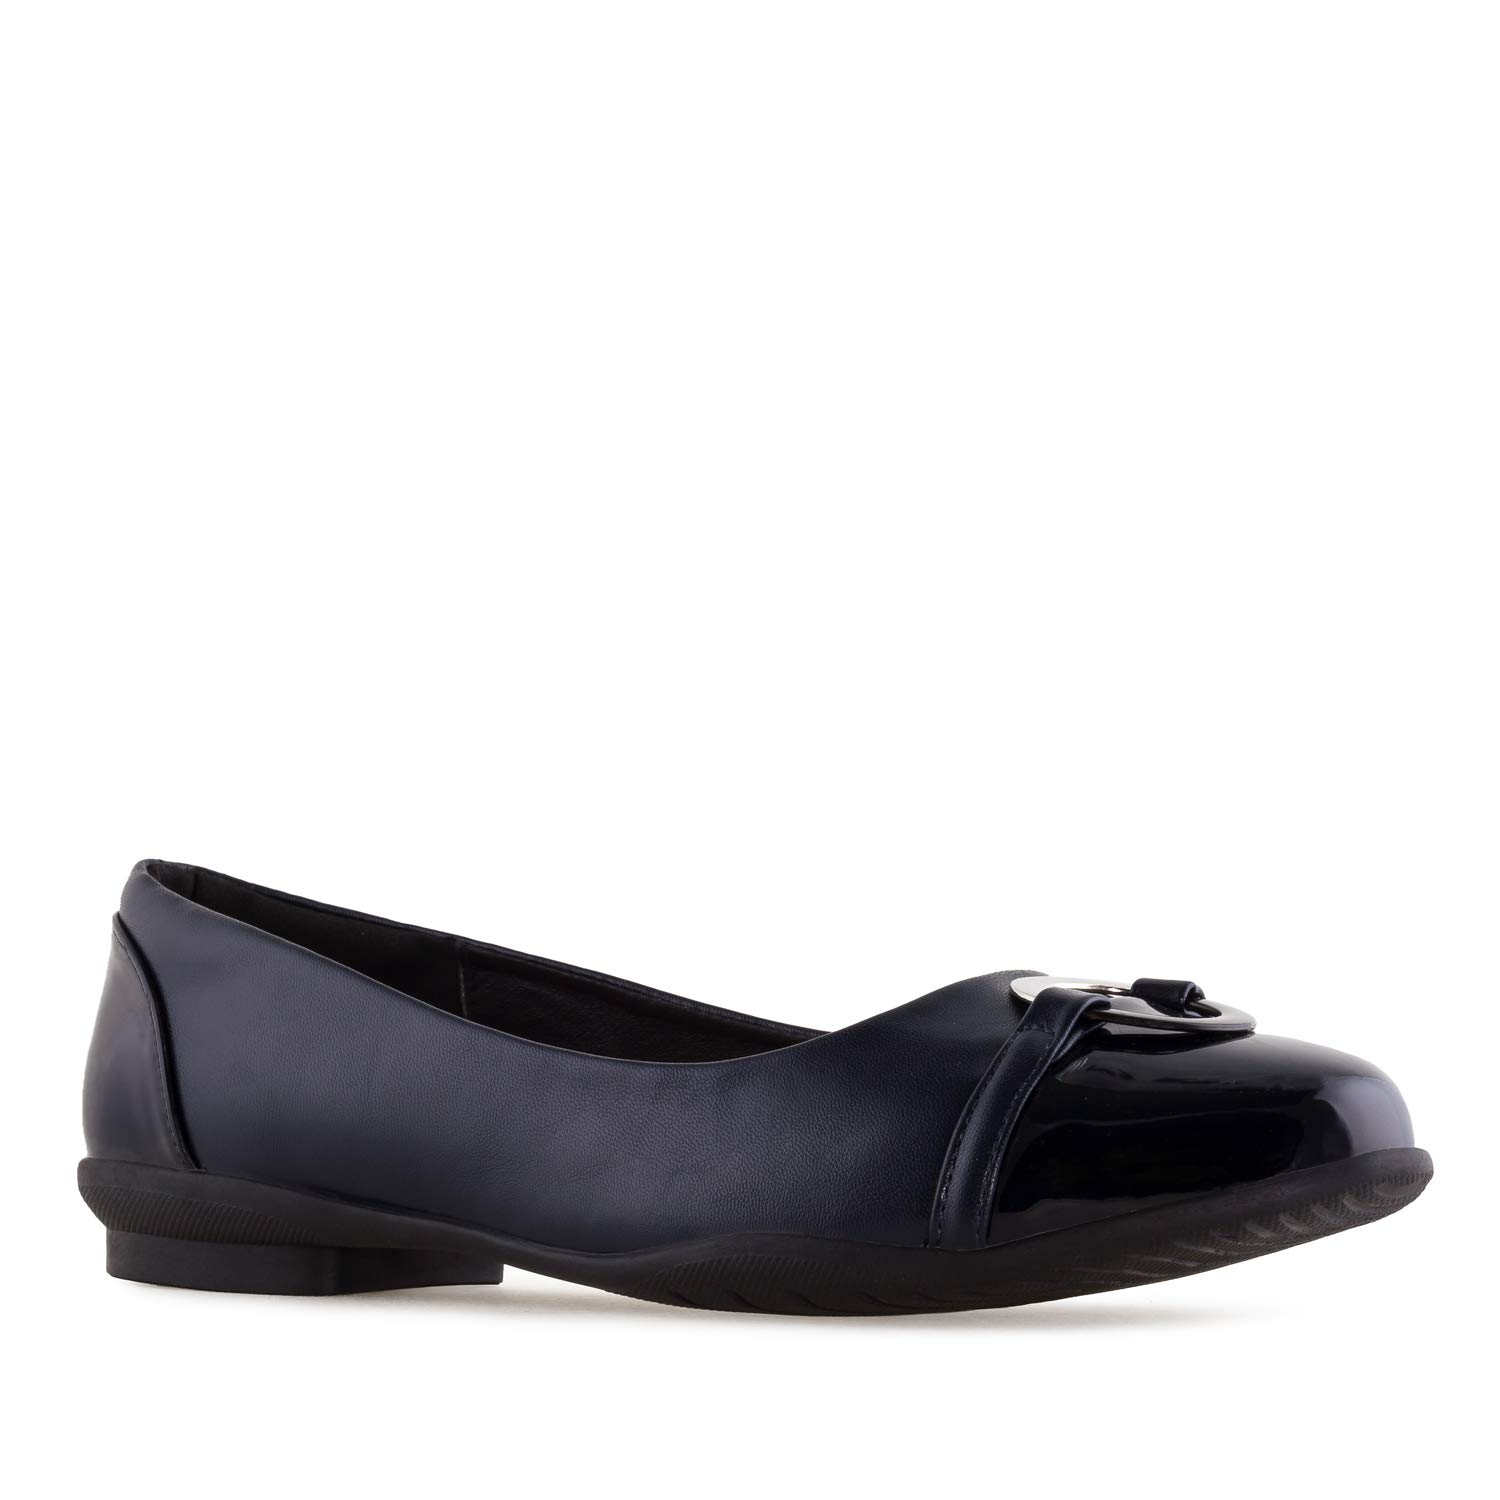 Andres Loafer.EU Machado - AM5327 - Loafer.EU Andres 42 bis 45 e86329